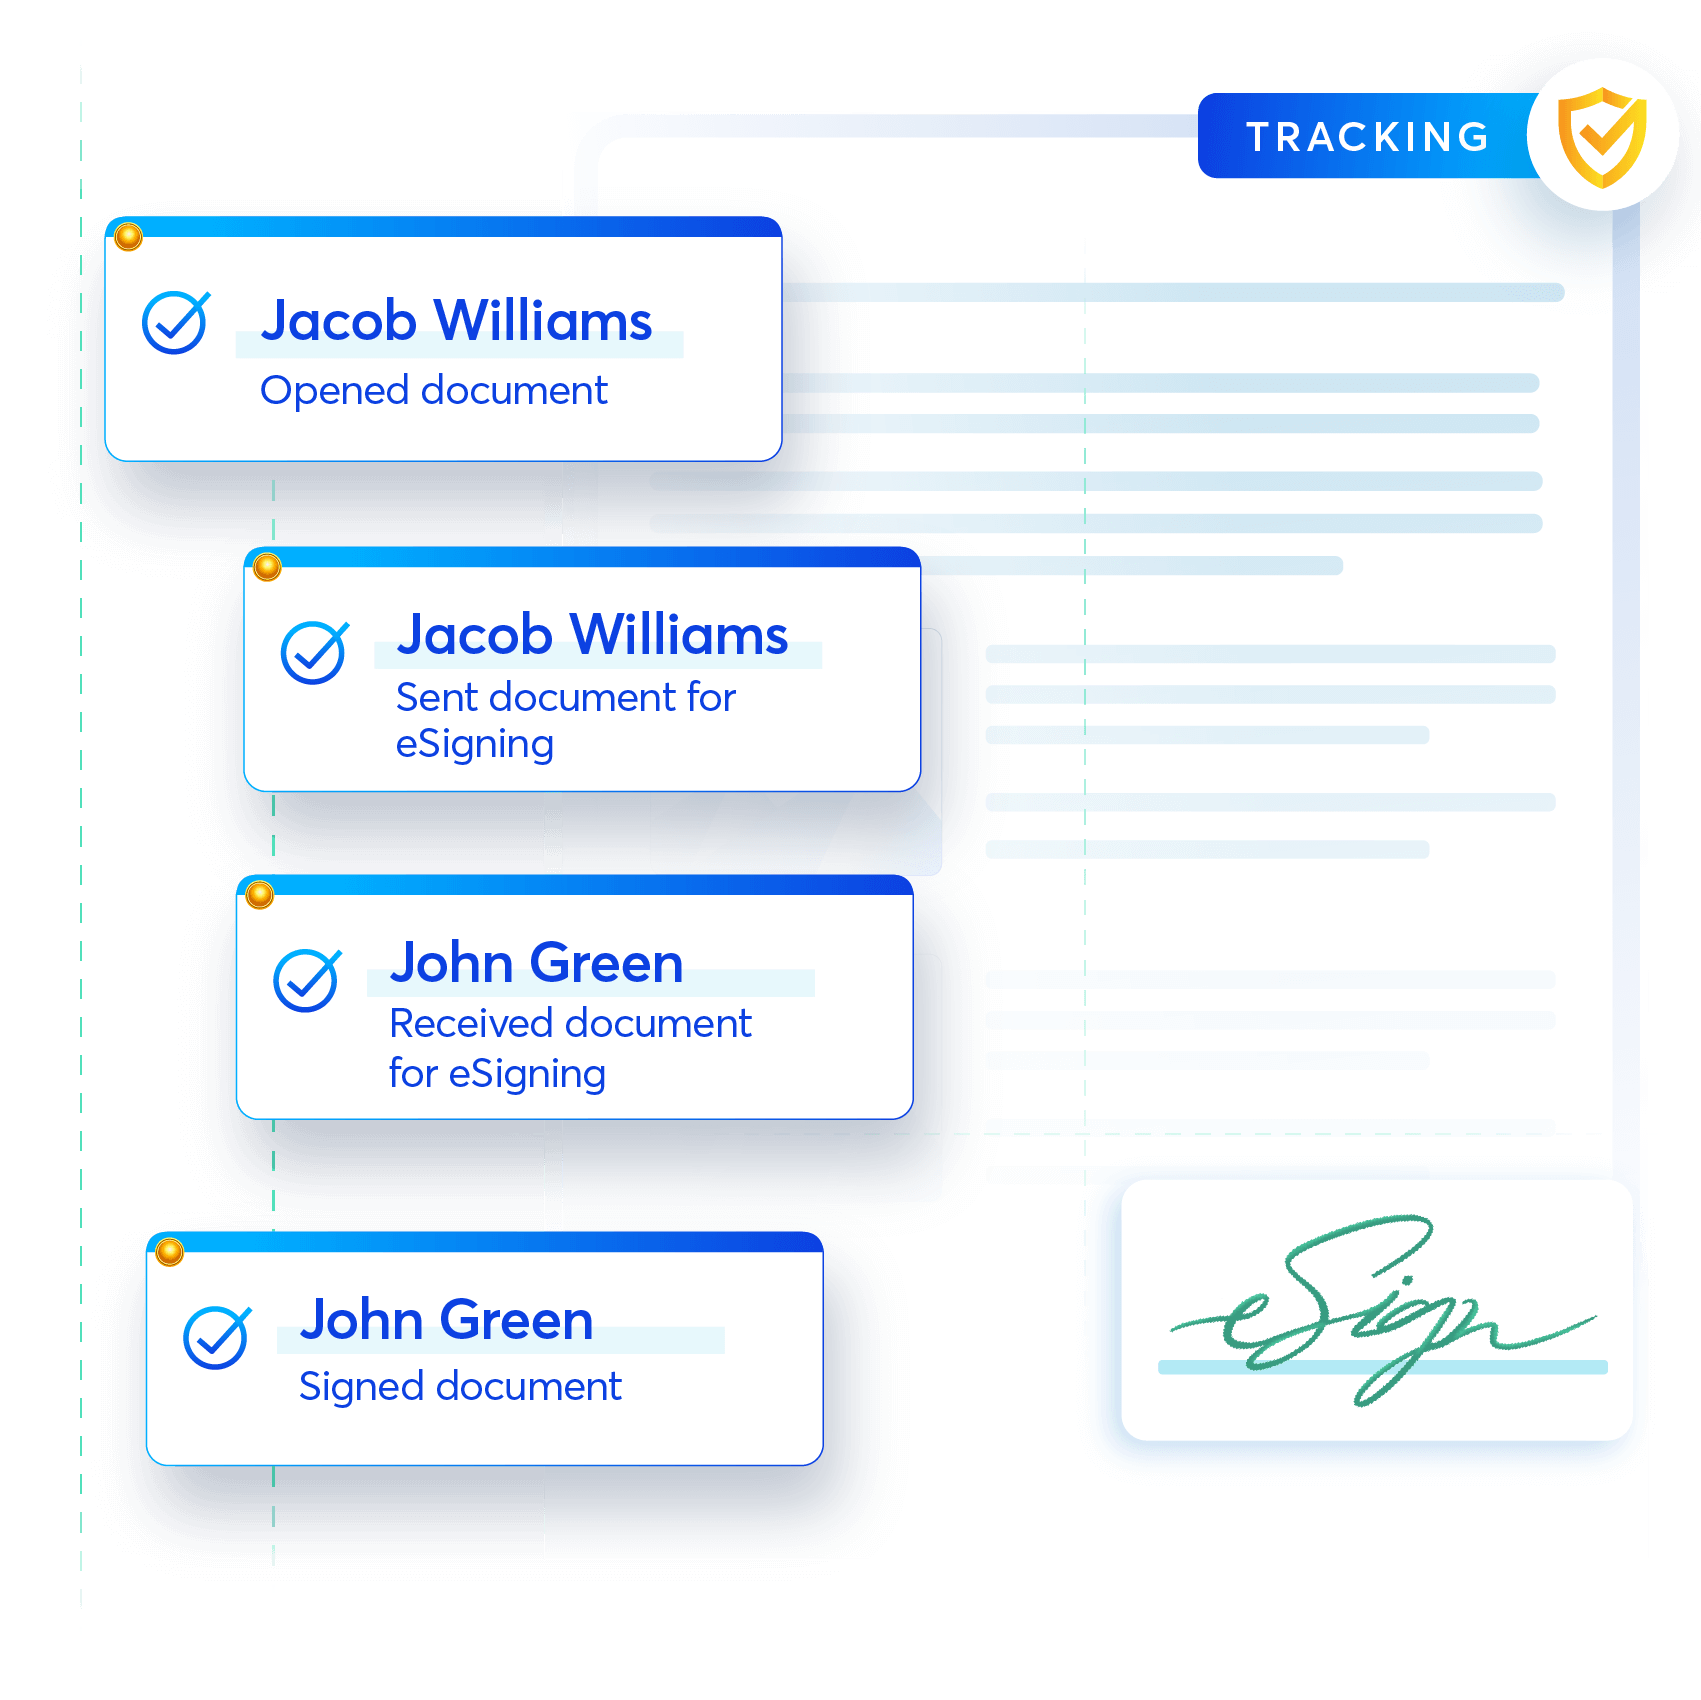 Know the status of your documents, keep a check on the user activity and manage the access control of your documents within Revv.